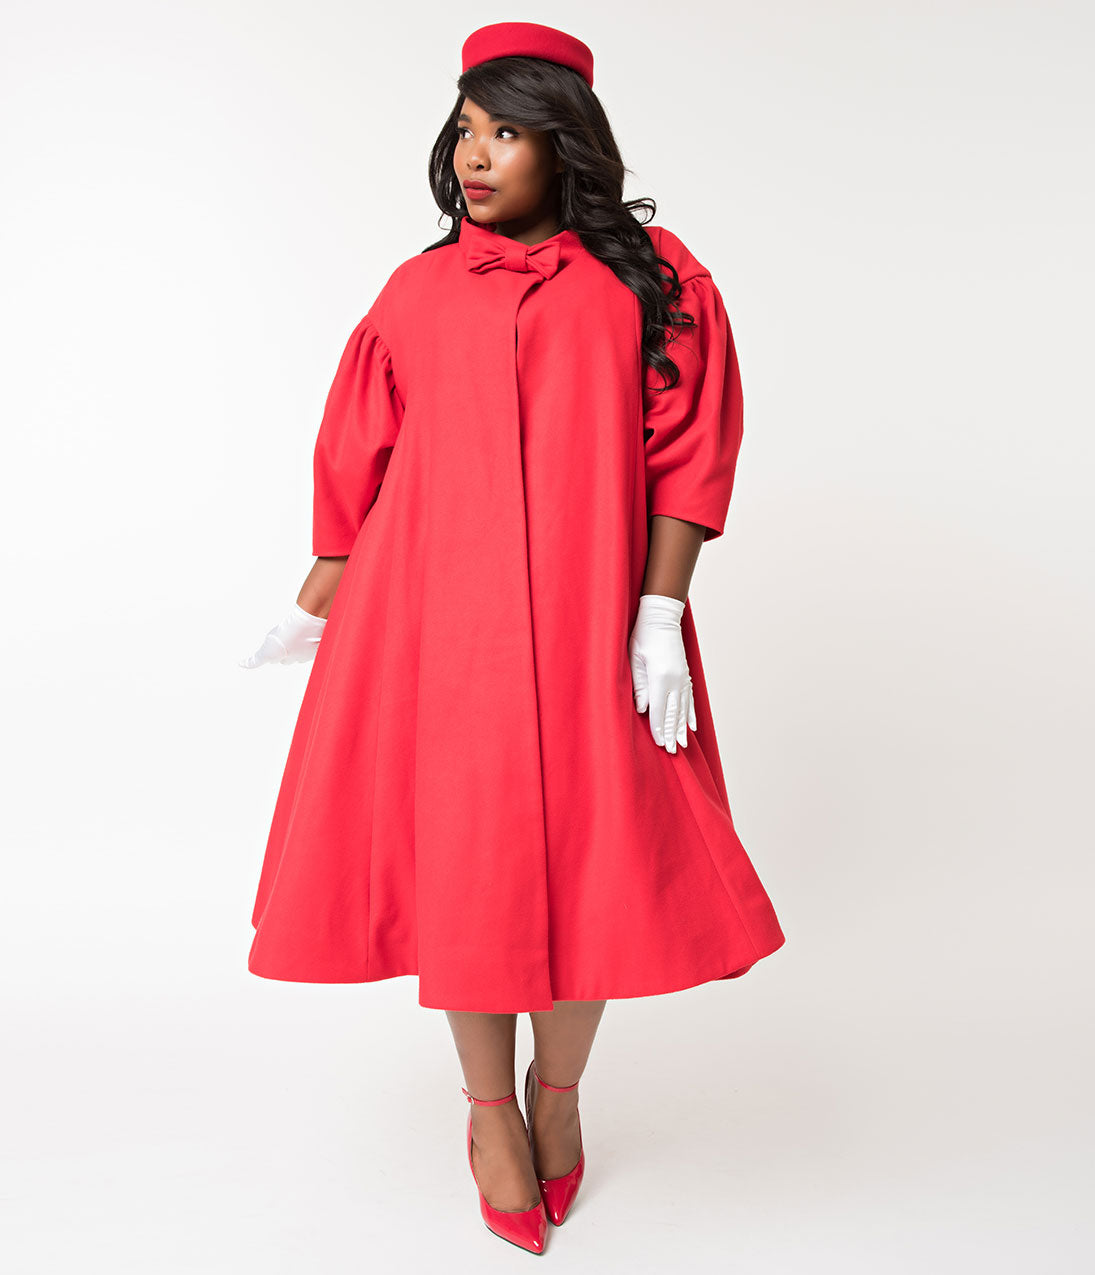 Vintage Coats & Jackets | Retro Coats and Jackets Barbie X Unique Vintage Plus Size 1960S Style Red Flare Swing Coat $158.00 AT vintagedancer.com